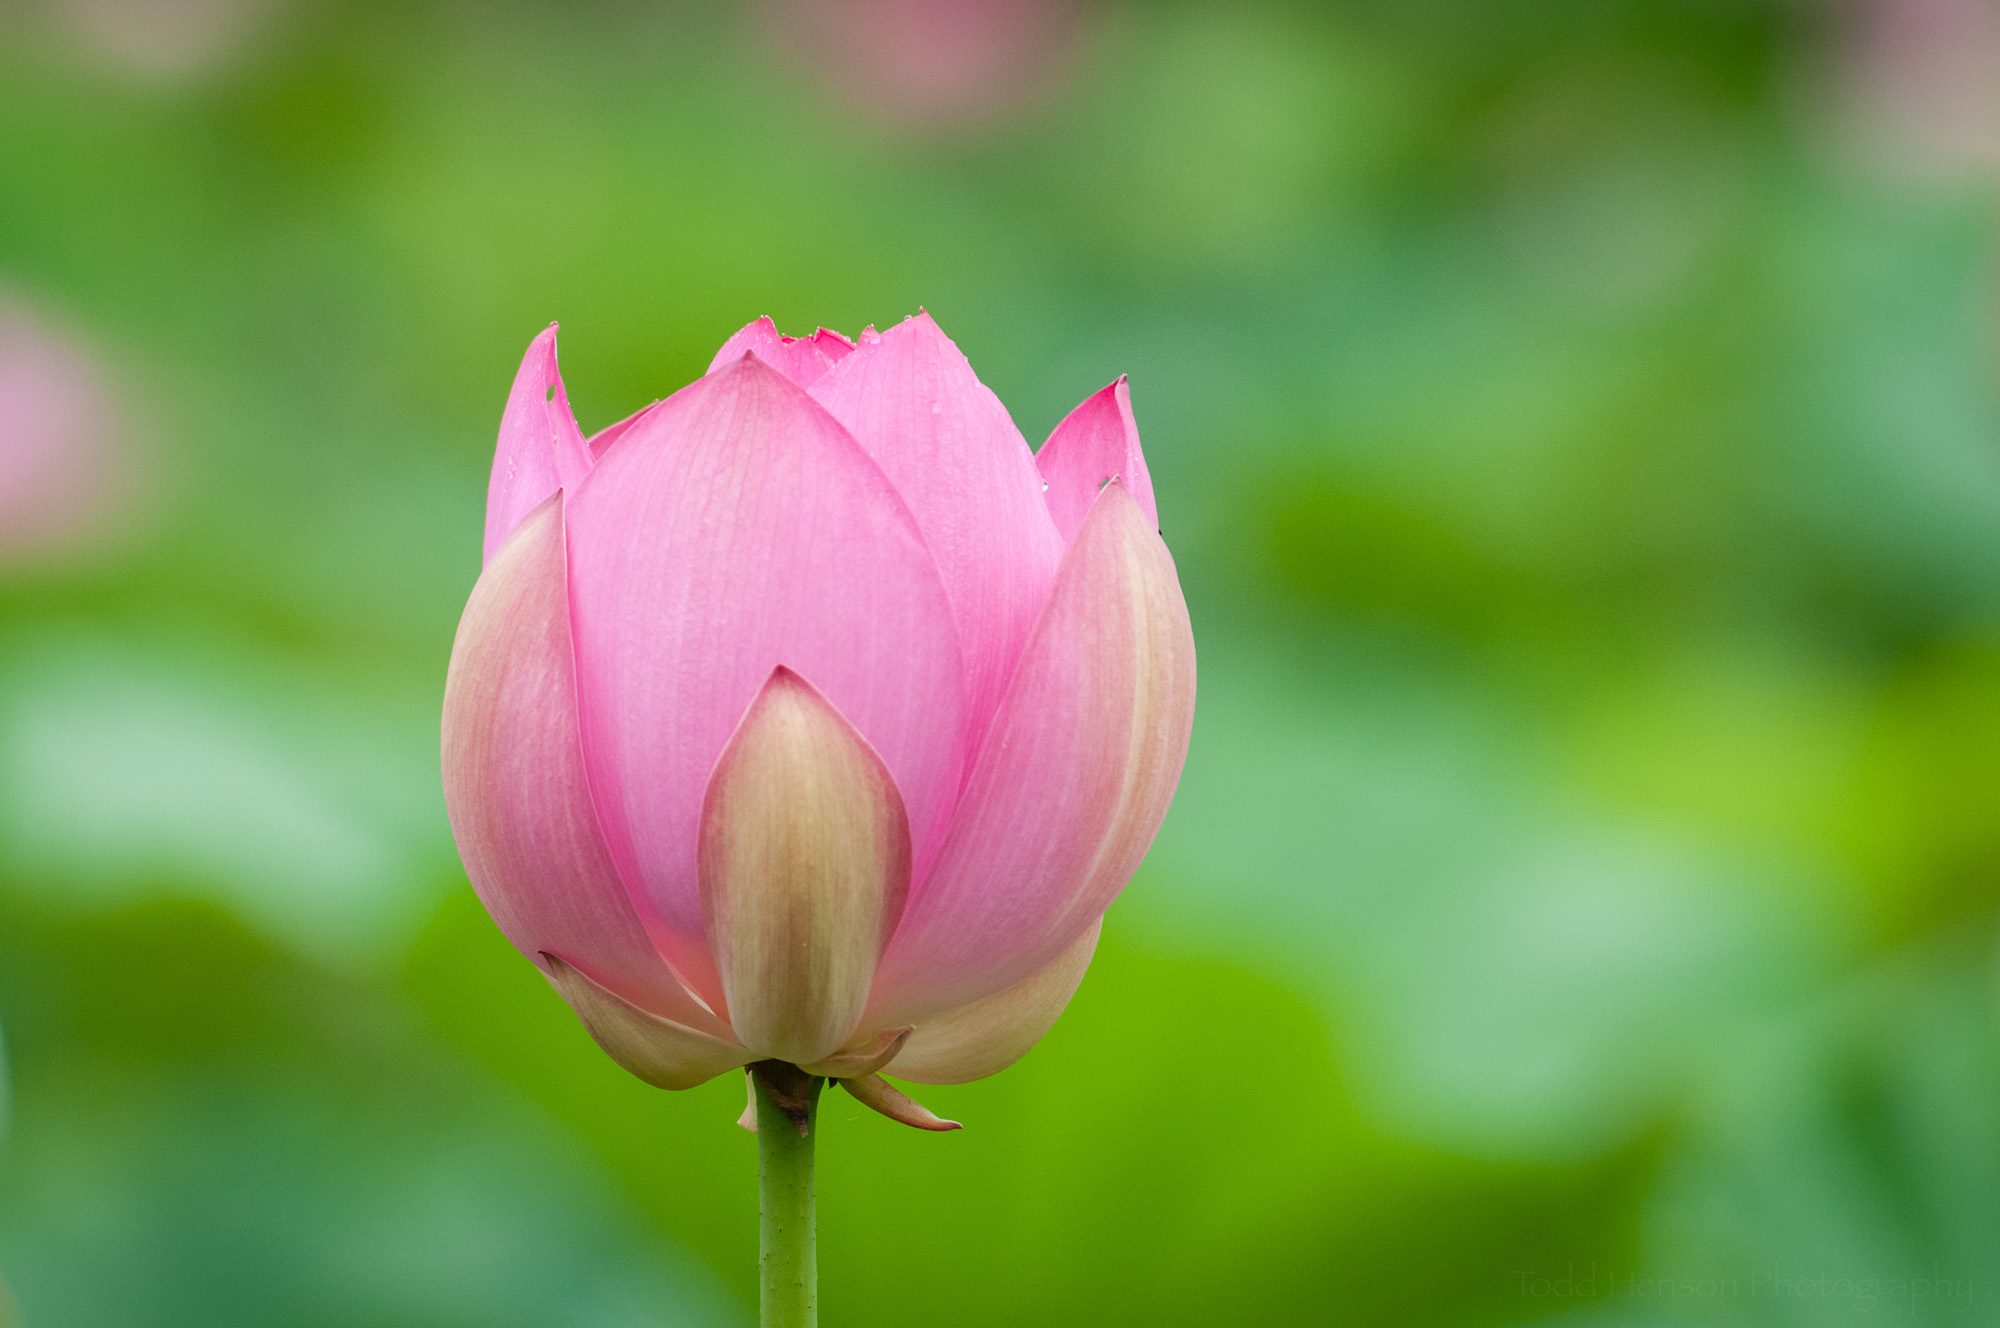 This lotus flower hasn't been open long.